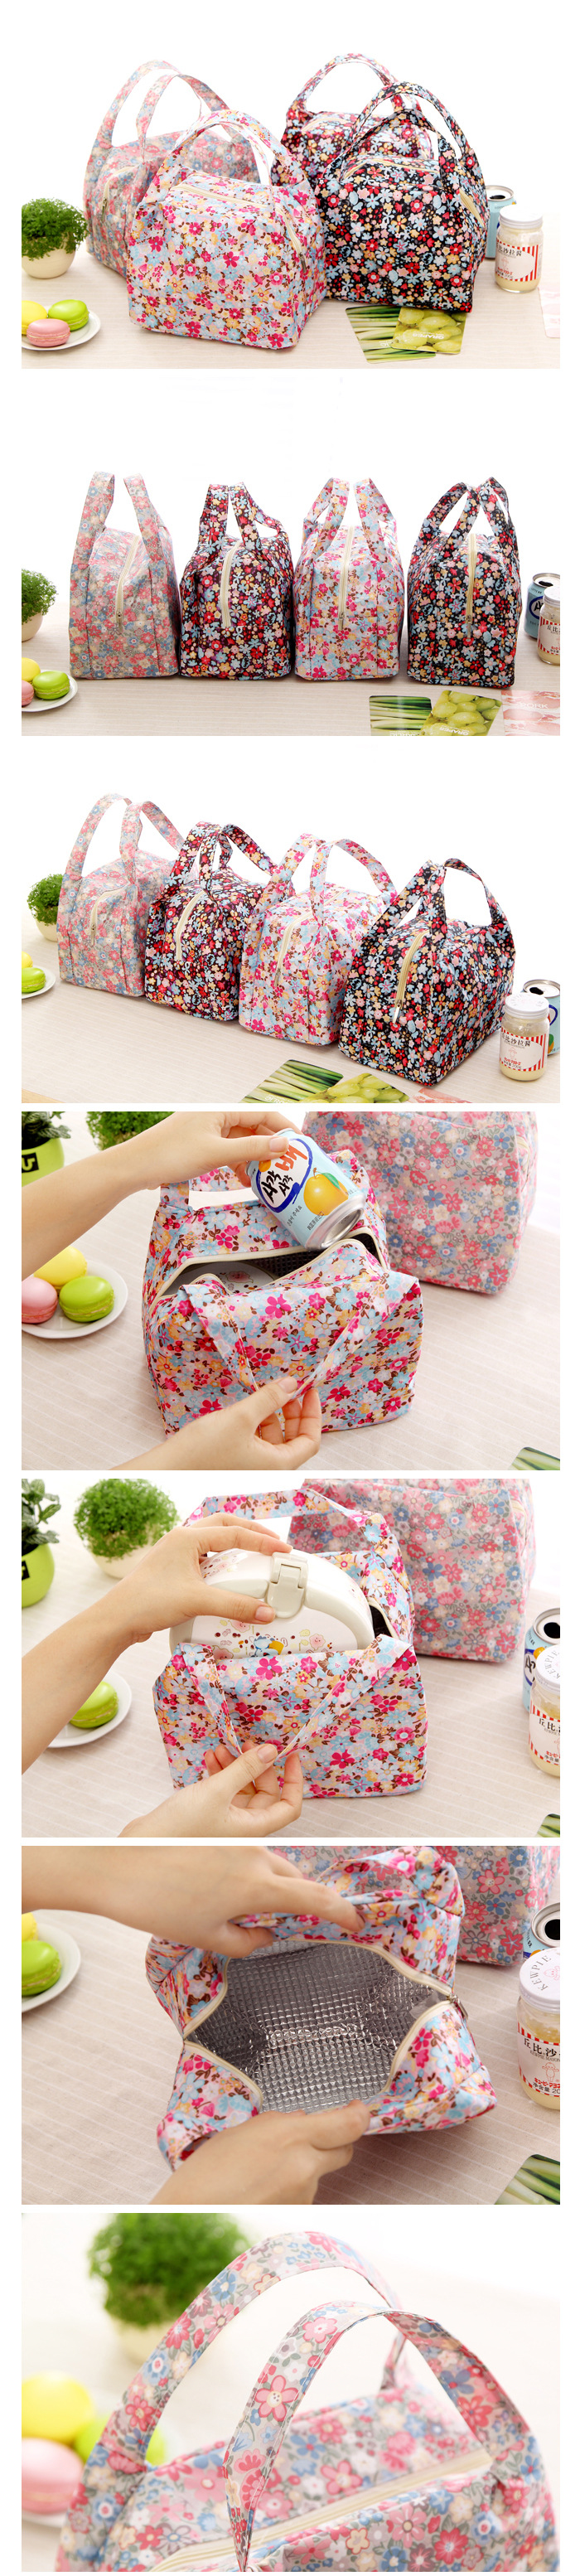 Oxford Waterproof Lunch Tote Bag Picnic Cooler Insulated